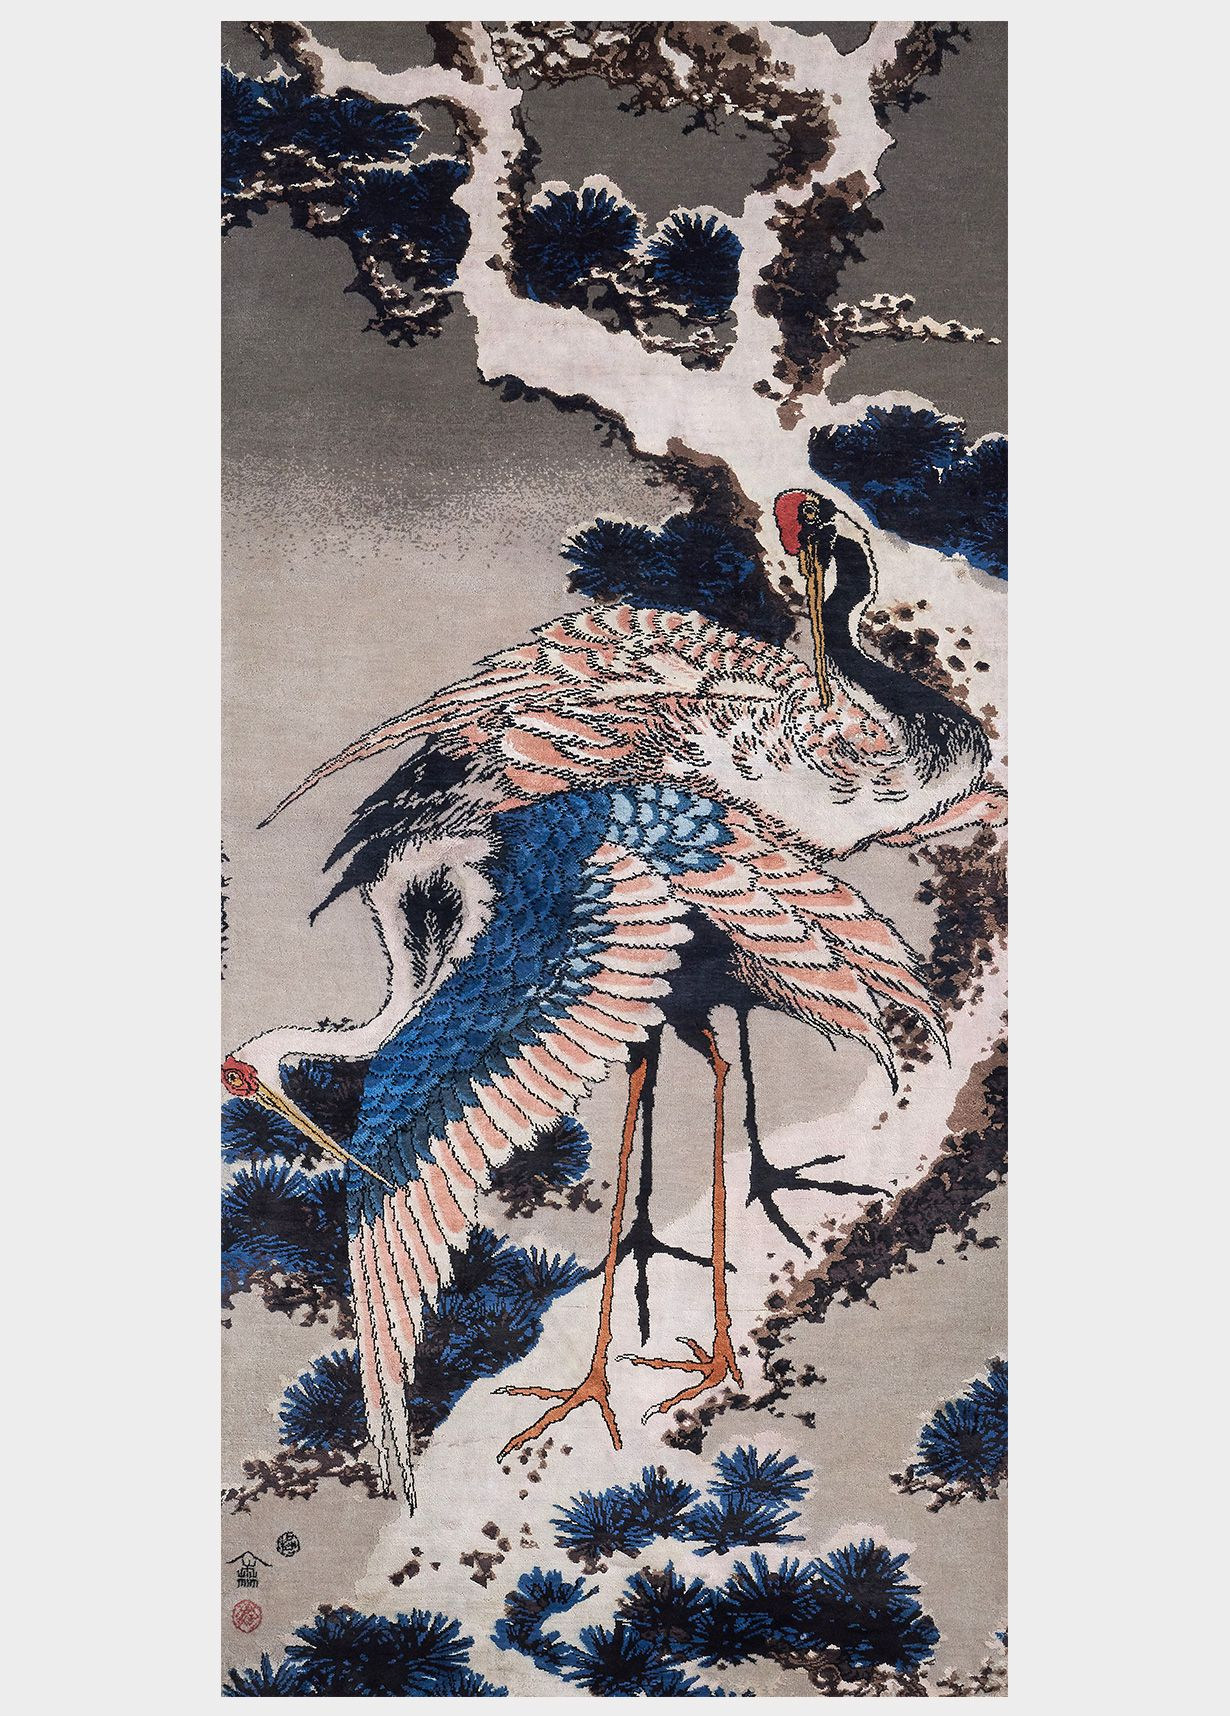 Cranes on a Snowy Pine from the British Museum Collection